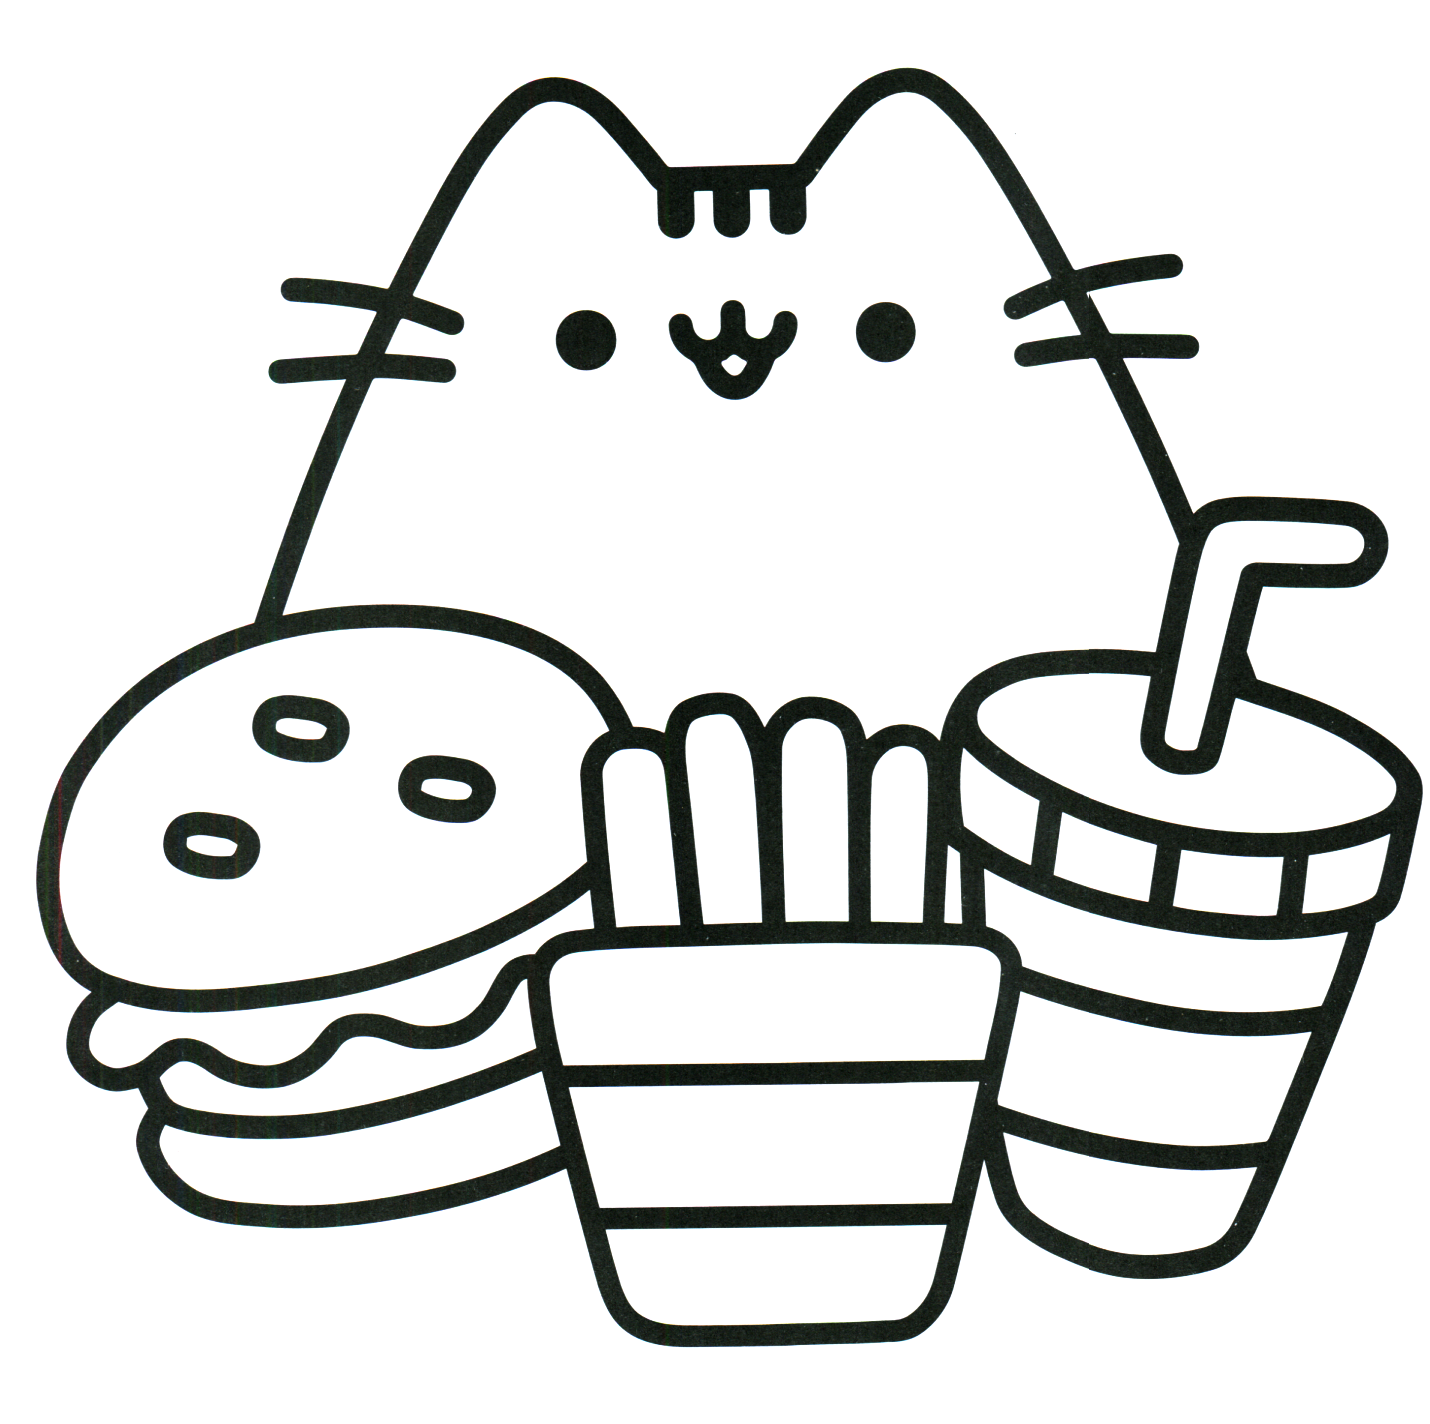 Coco kitty printable coloring pages